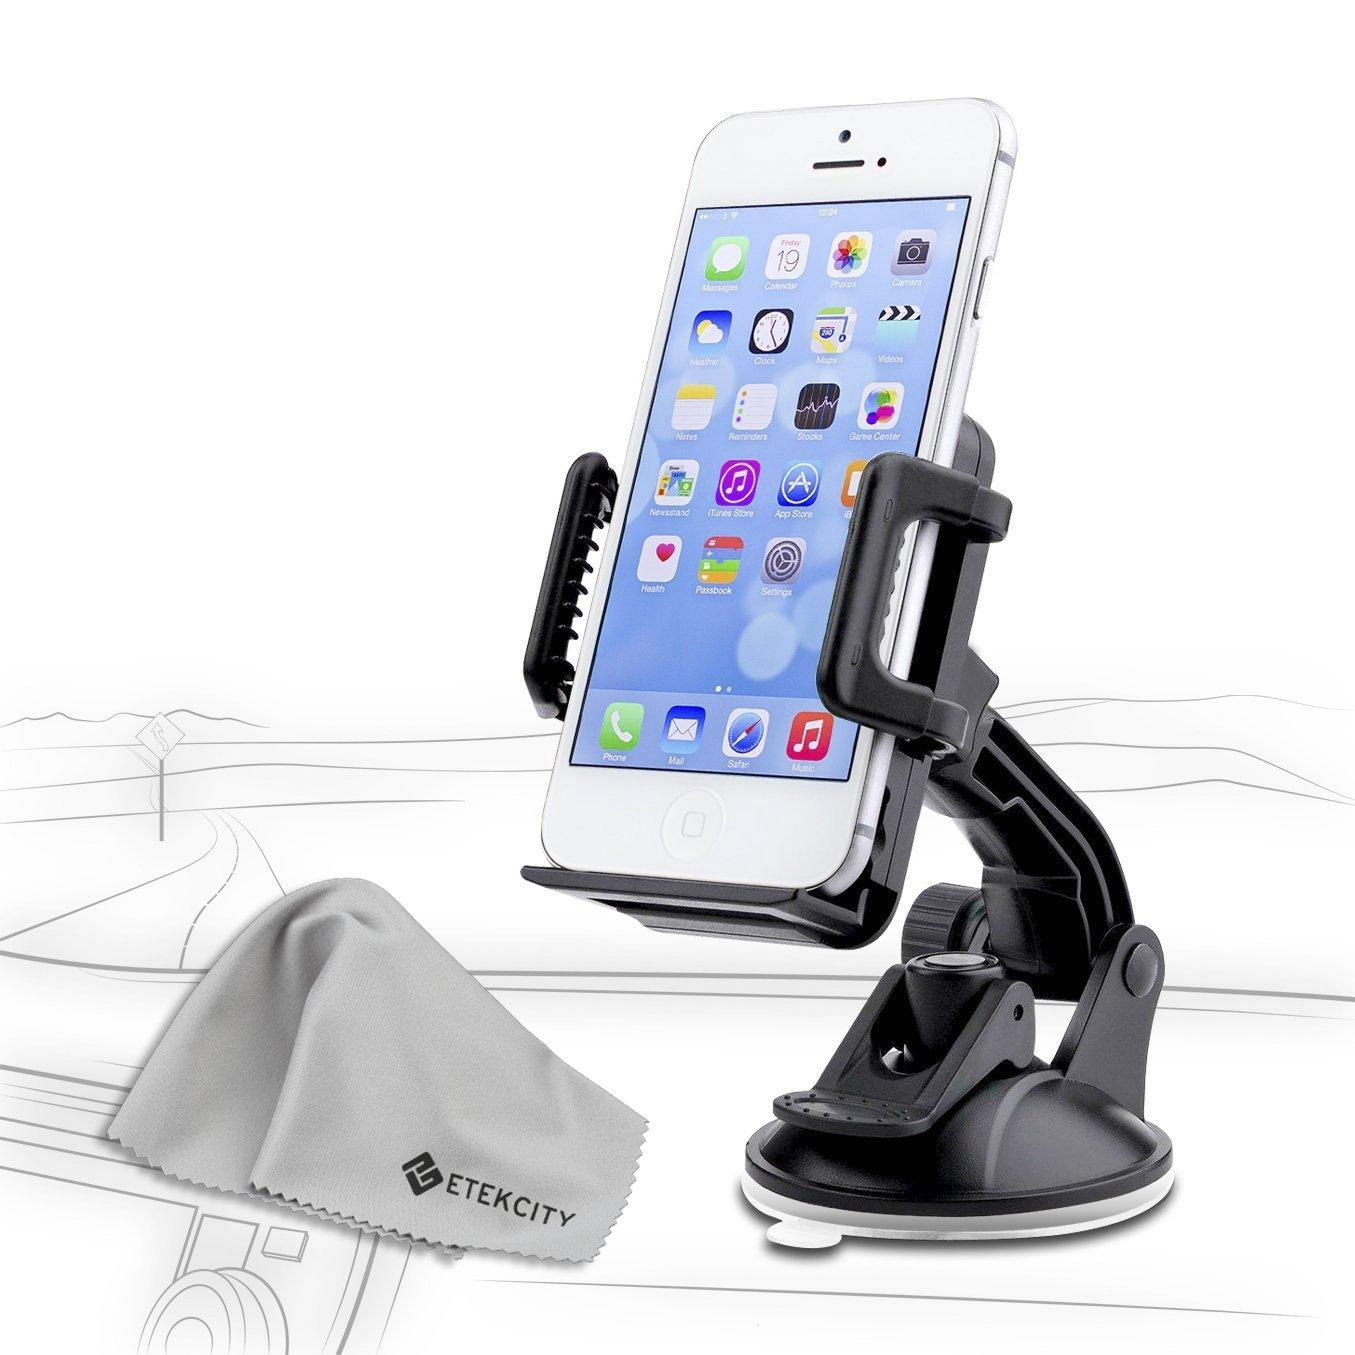 Etekcity 360° Universal Car Mount Holder